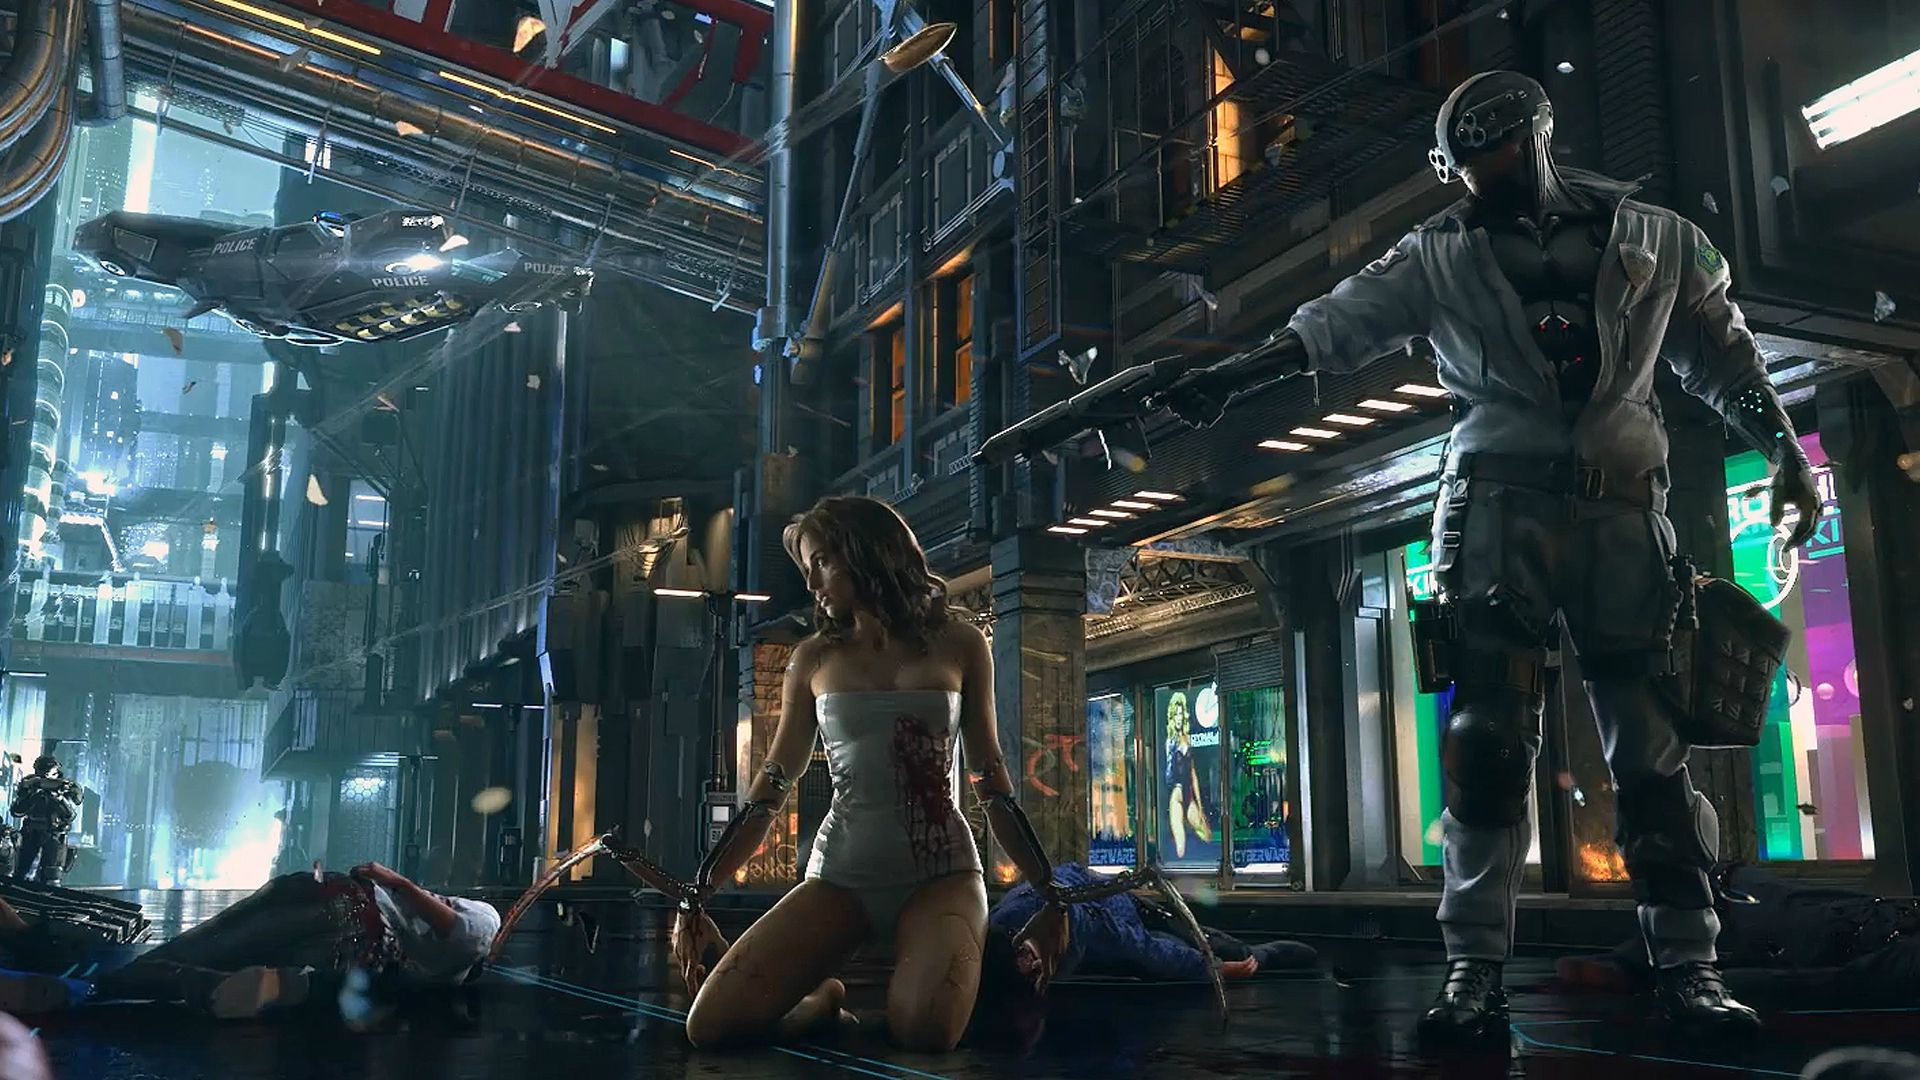 CD Projekt RED Discuss Cyberpunk 2077 And Plans For E3 cyberpunk